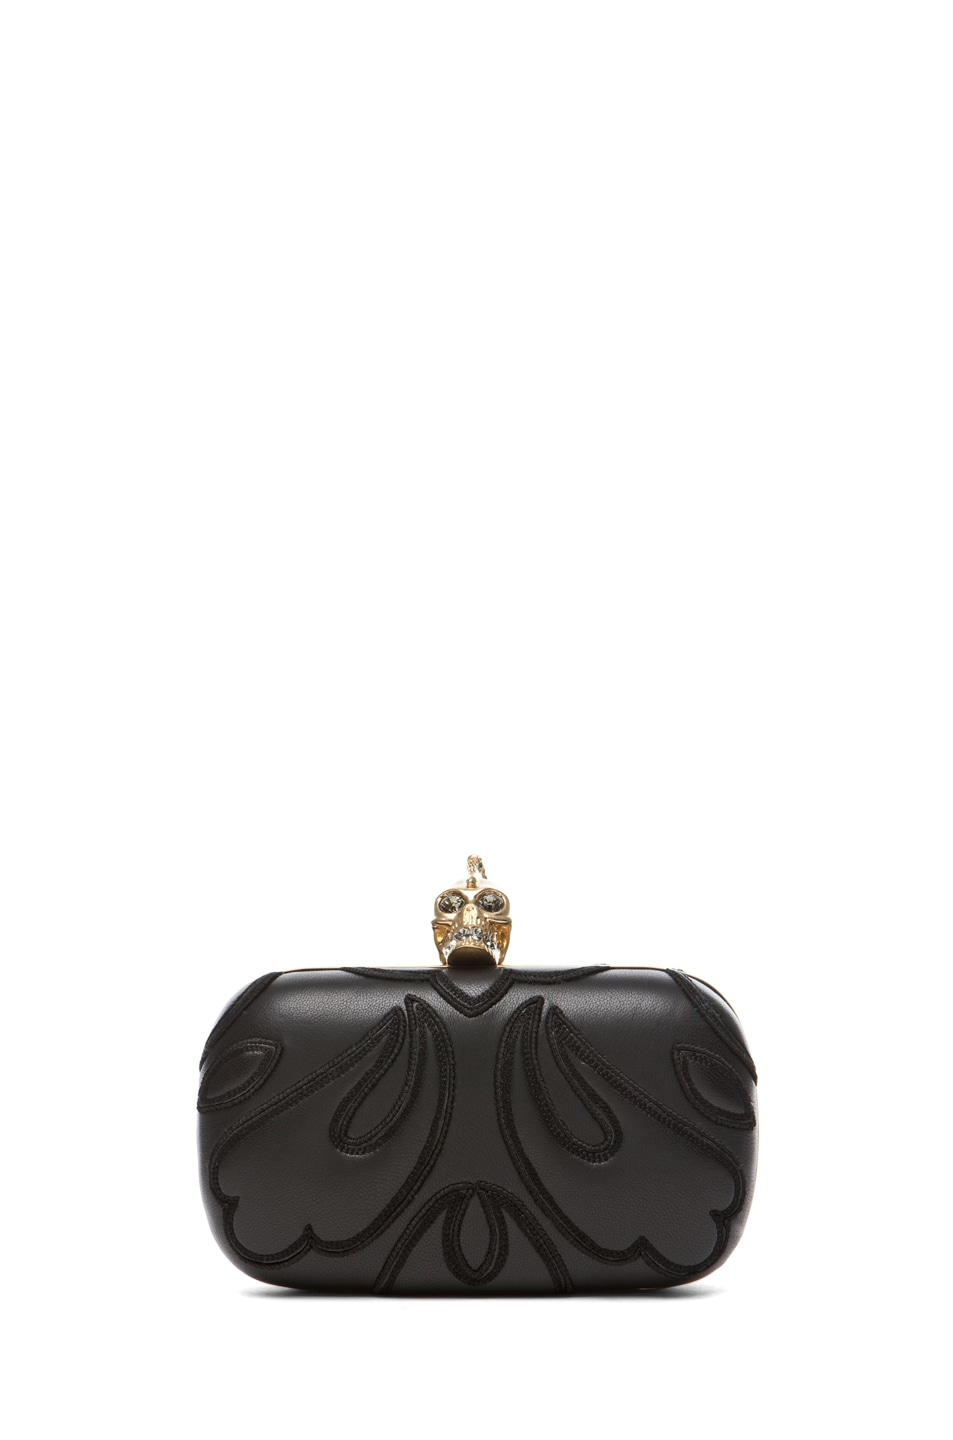 Image 1 of Alexander McQueen Punk Baroc Skull Box Clutch in Black